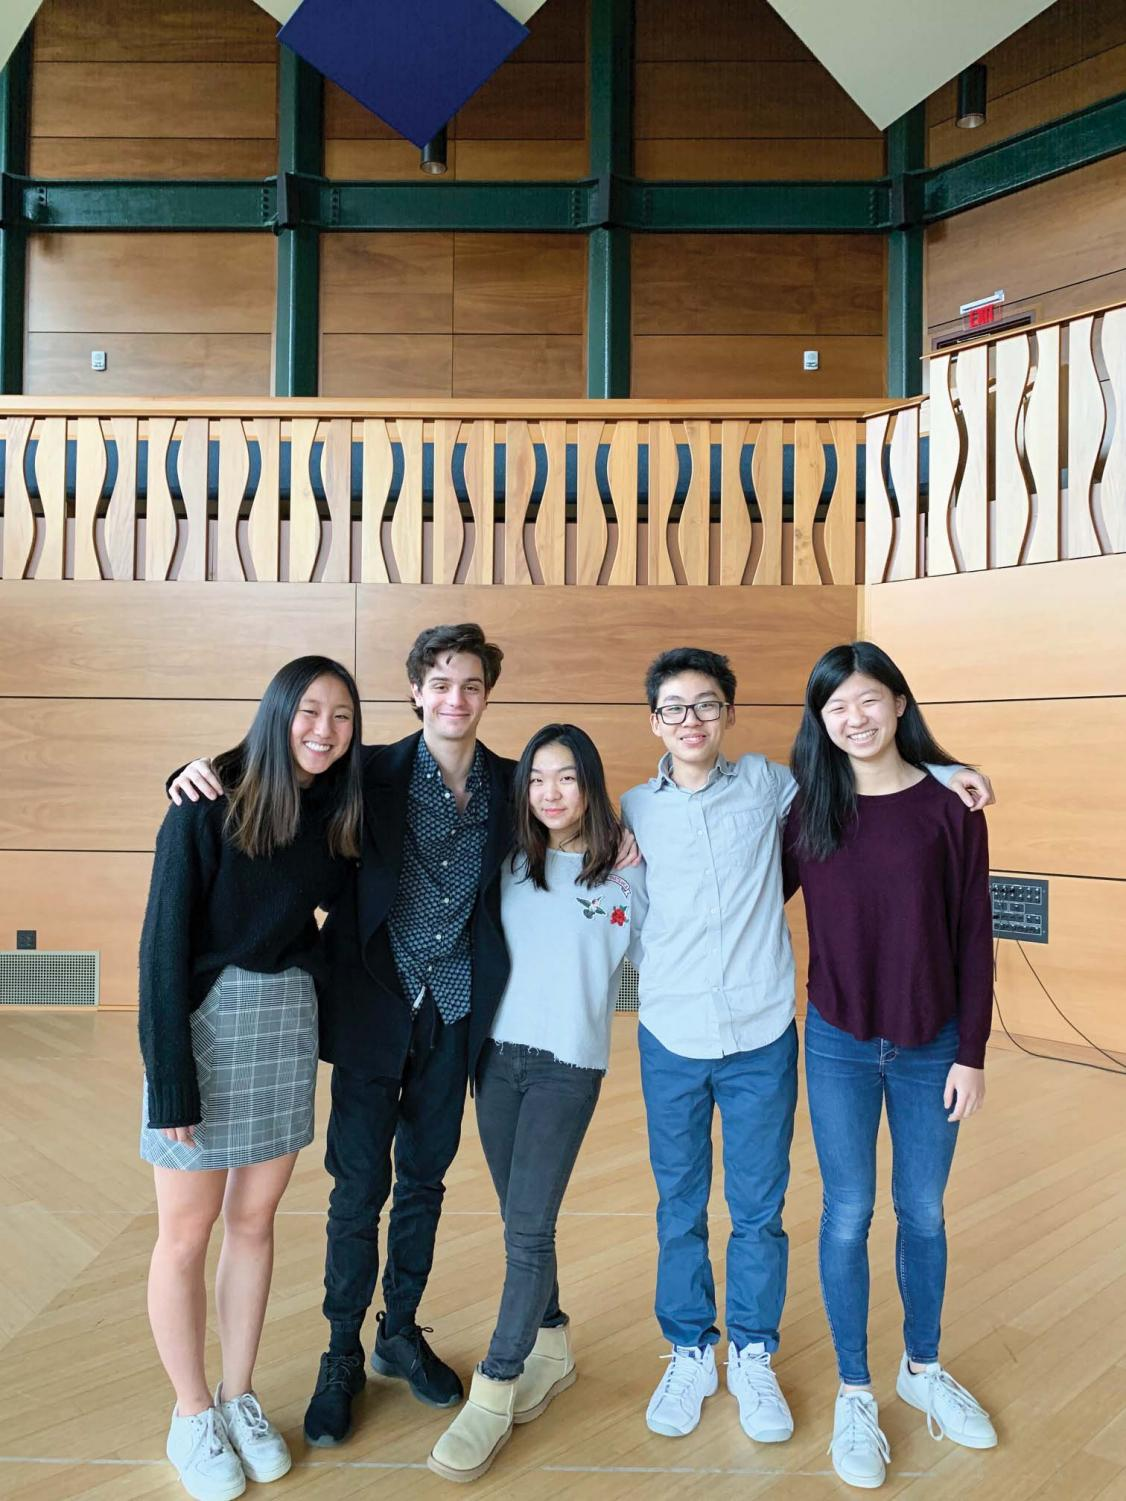 Clara Ma '23, Noam Ginsparg '22, Angela Choi '21, Ricky Shi '22, and Victoria Chen '21 won major prizes in their divisions.